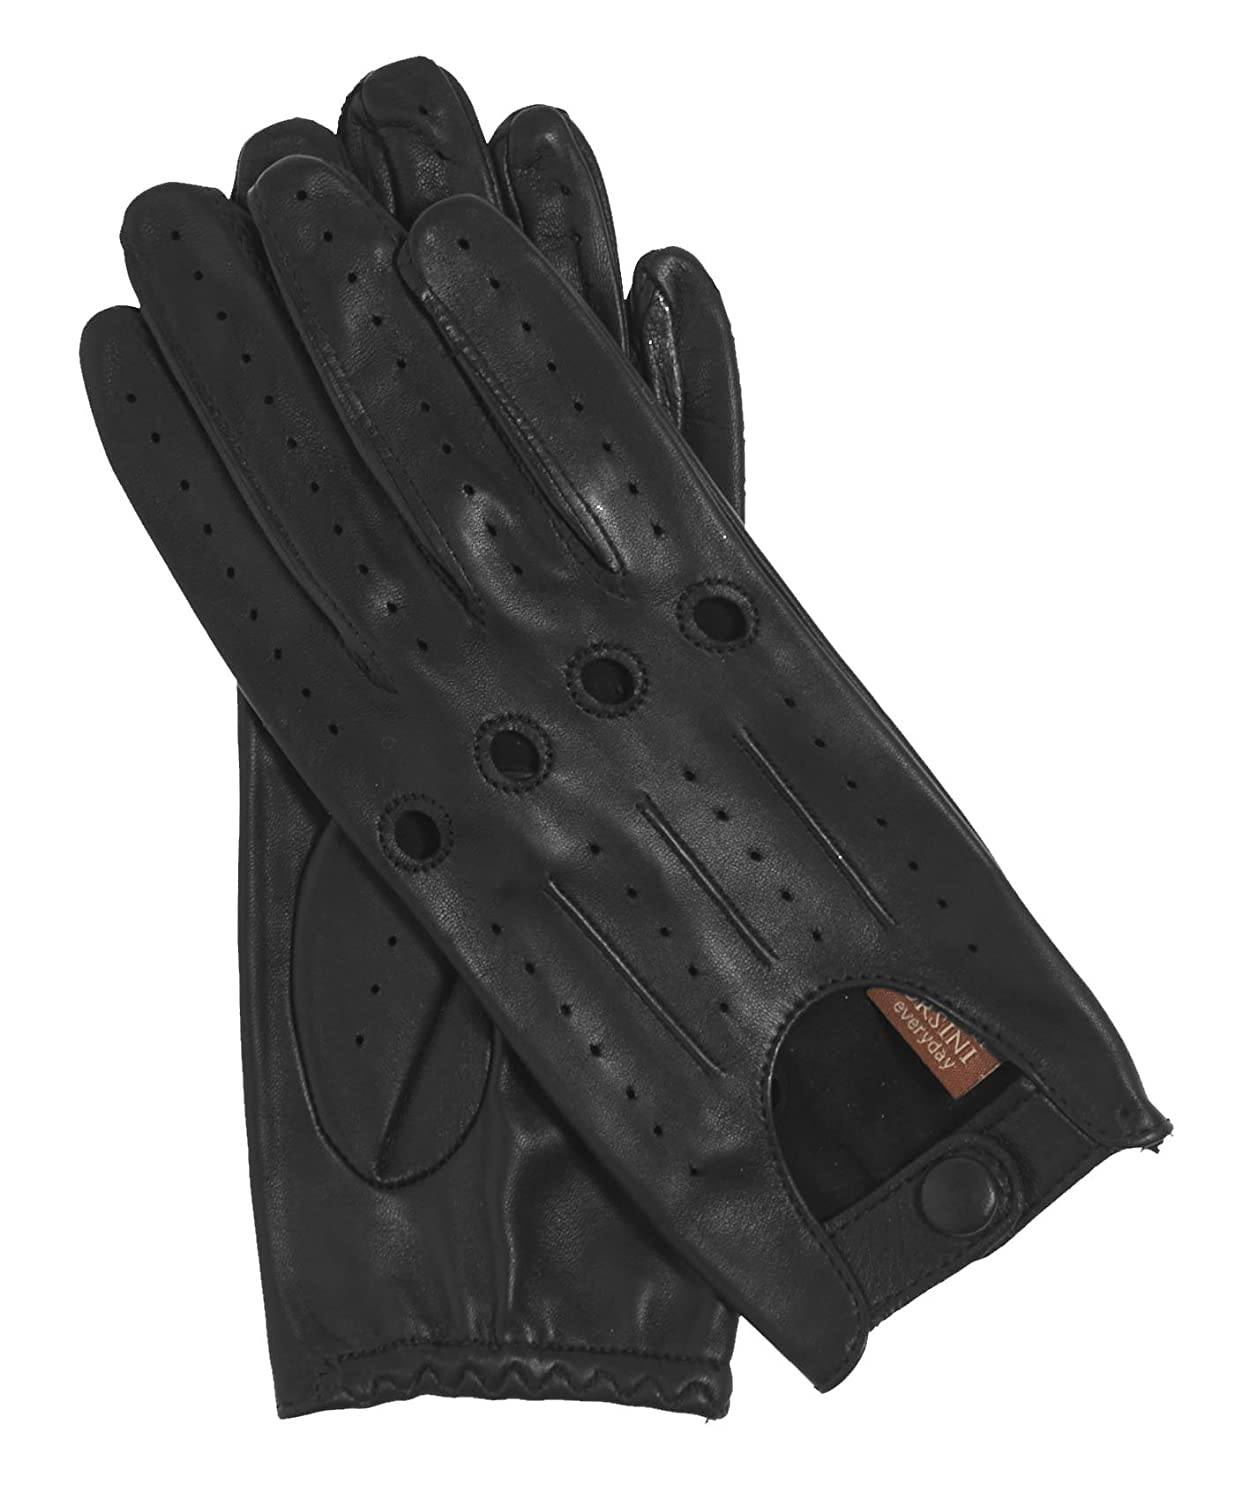 Skin tight leather driving gloves - Fratelli Orsini Everyday Women S Open Back Leather Driving Gloves Size 6 Color Black At Amazon Women S Clothing Store Cold Weather Gloves